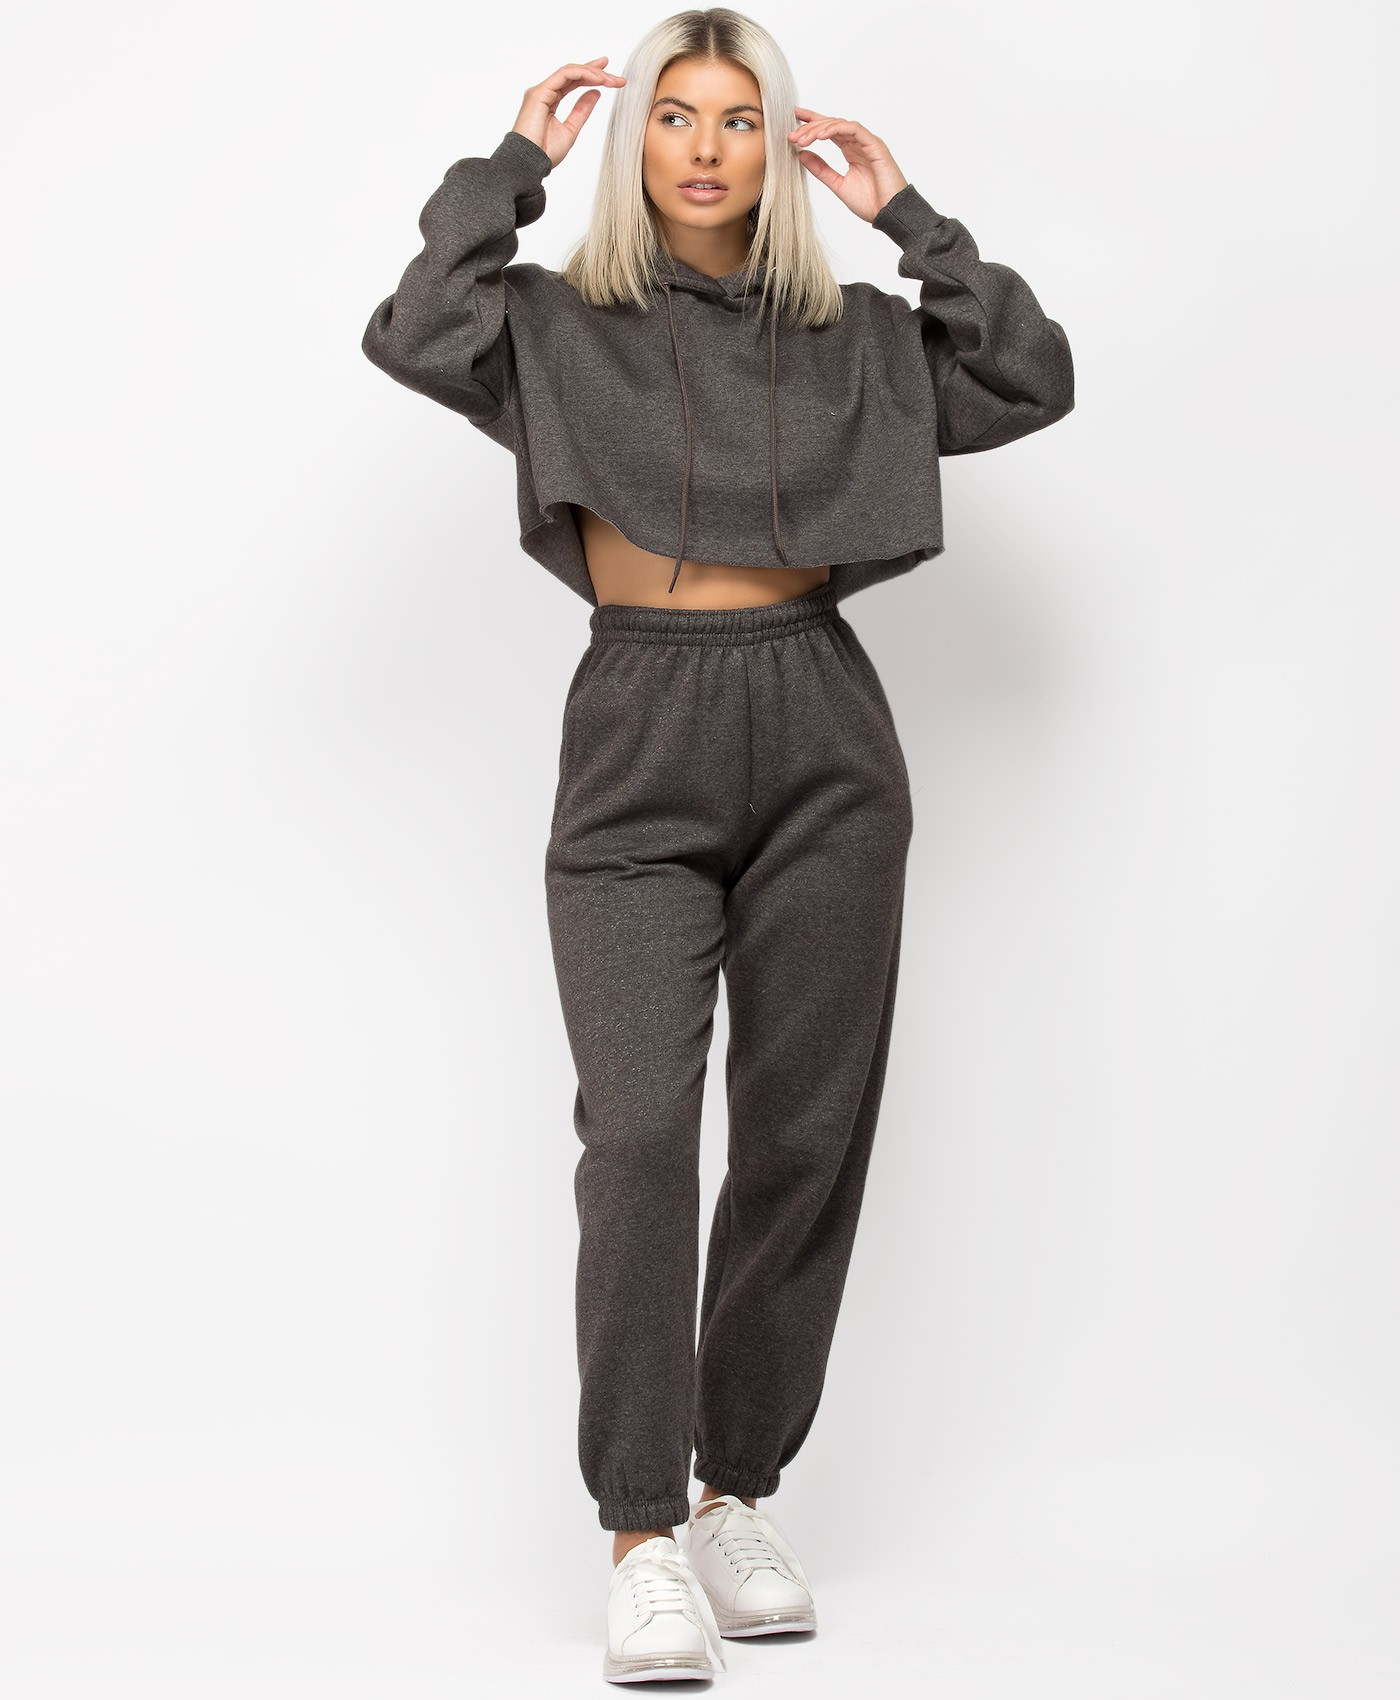 Charcoal-Oversized-Cropped-Hoody-&-Joggers-Loungewear-Set-1